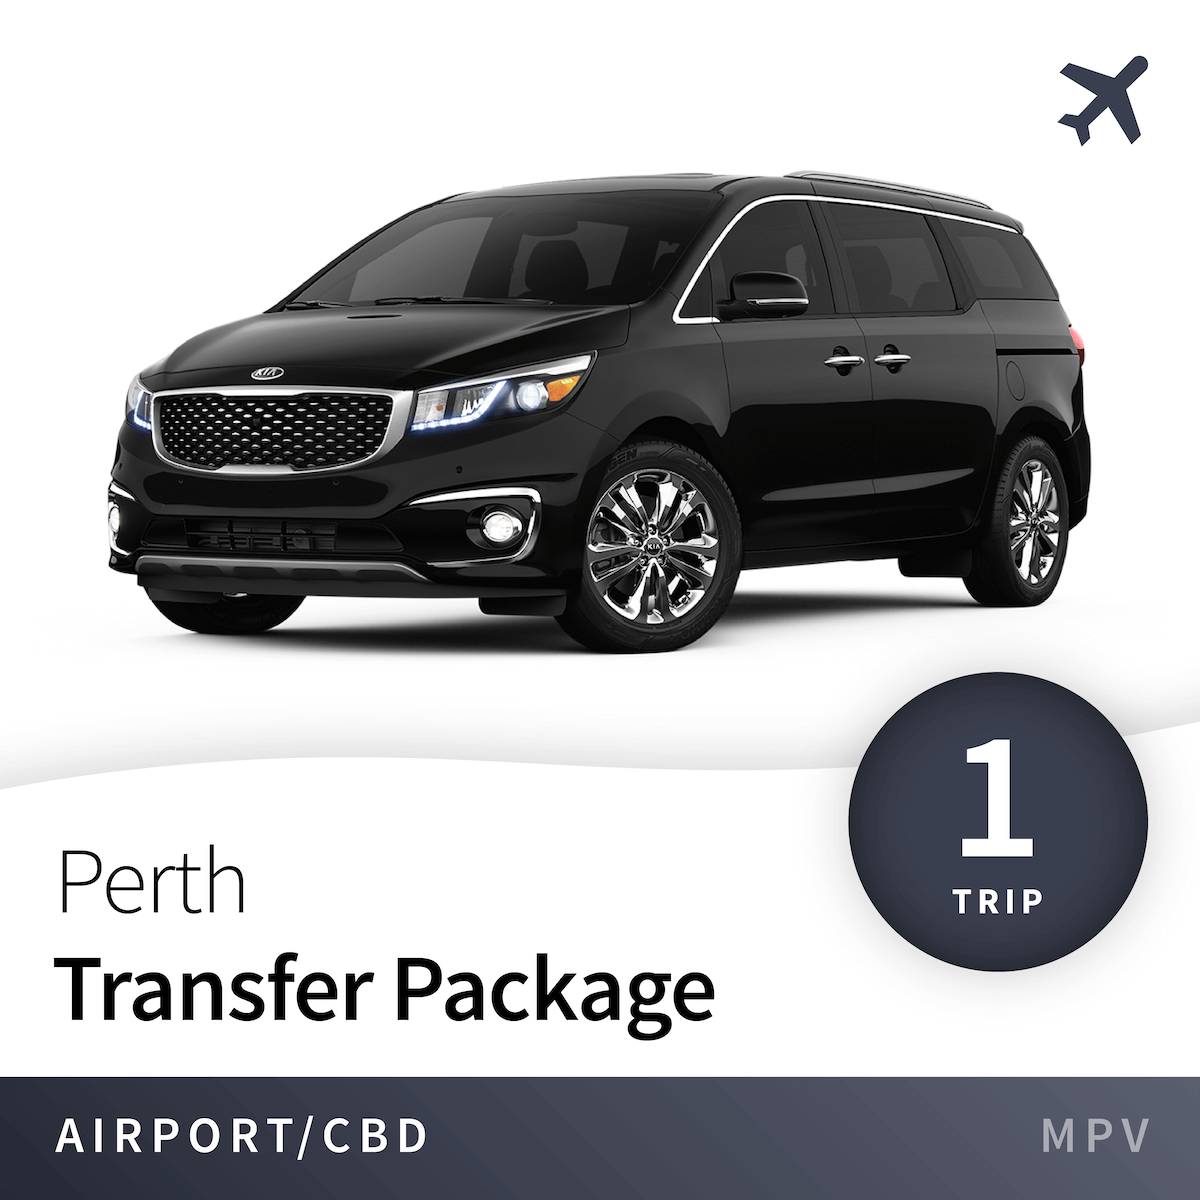 Perth Airport Transfer Package - MPV (1 Trip) 3